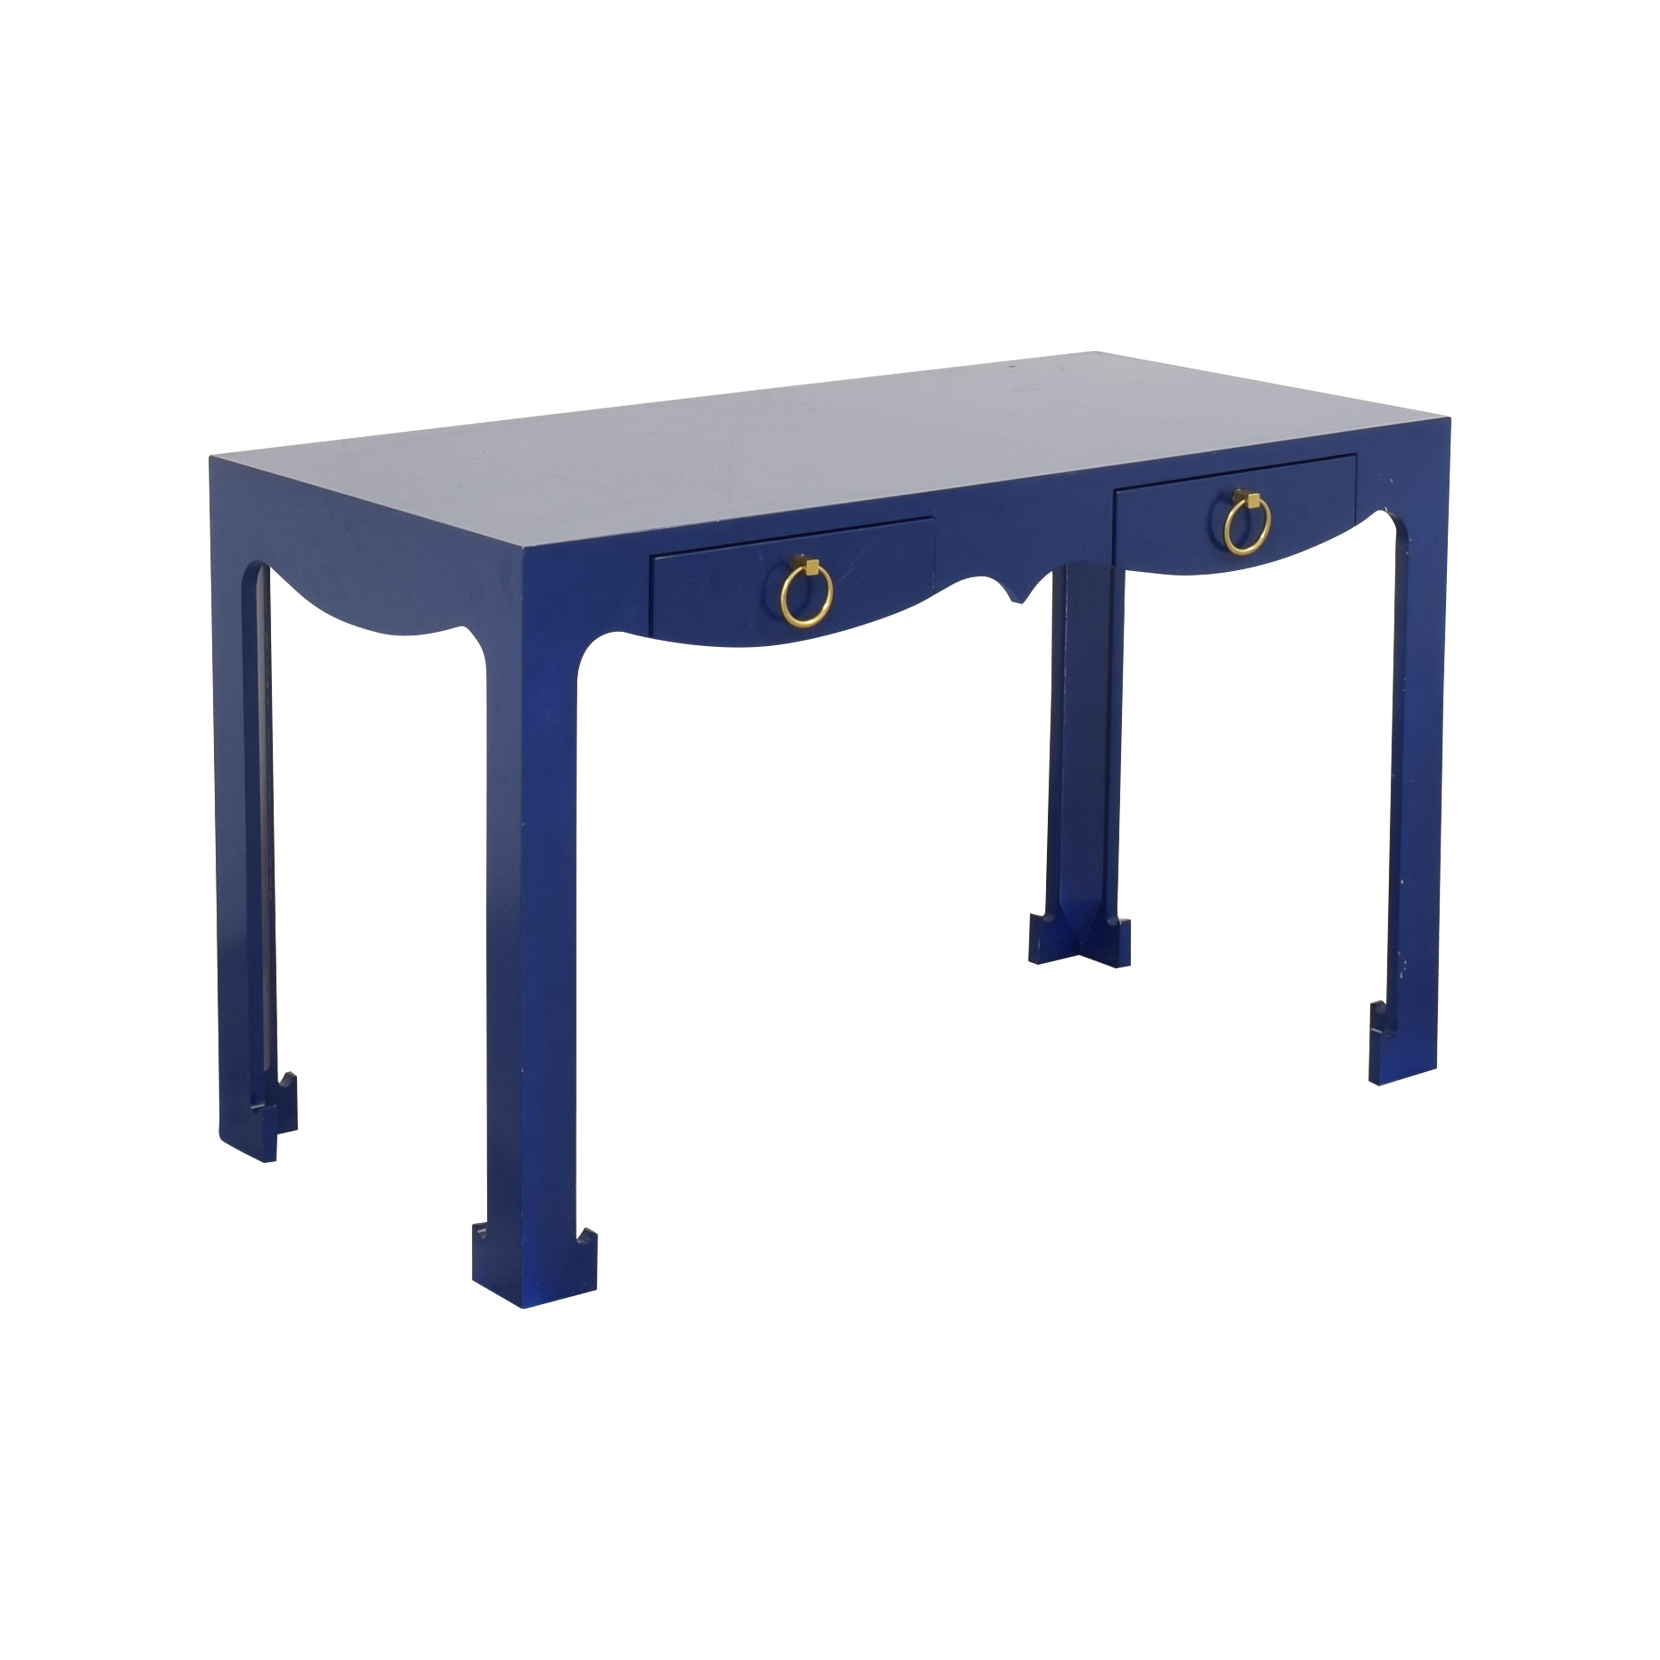 Blue Entry Table with Drawers / Accent Tables